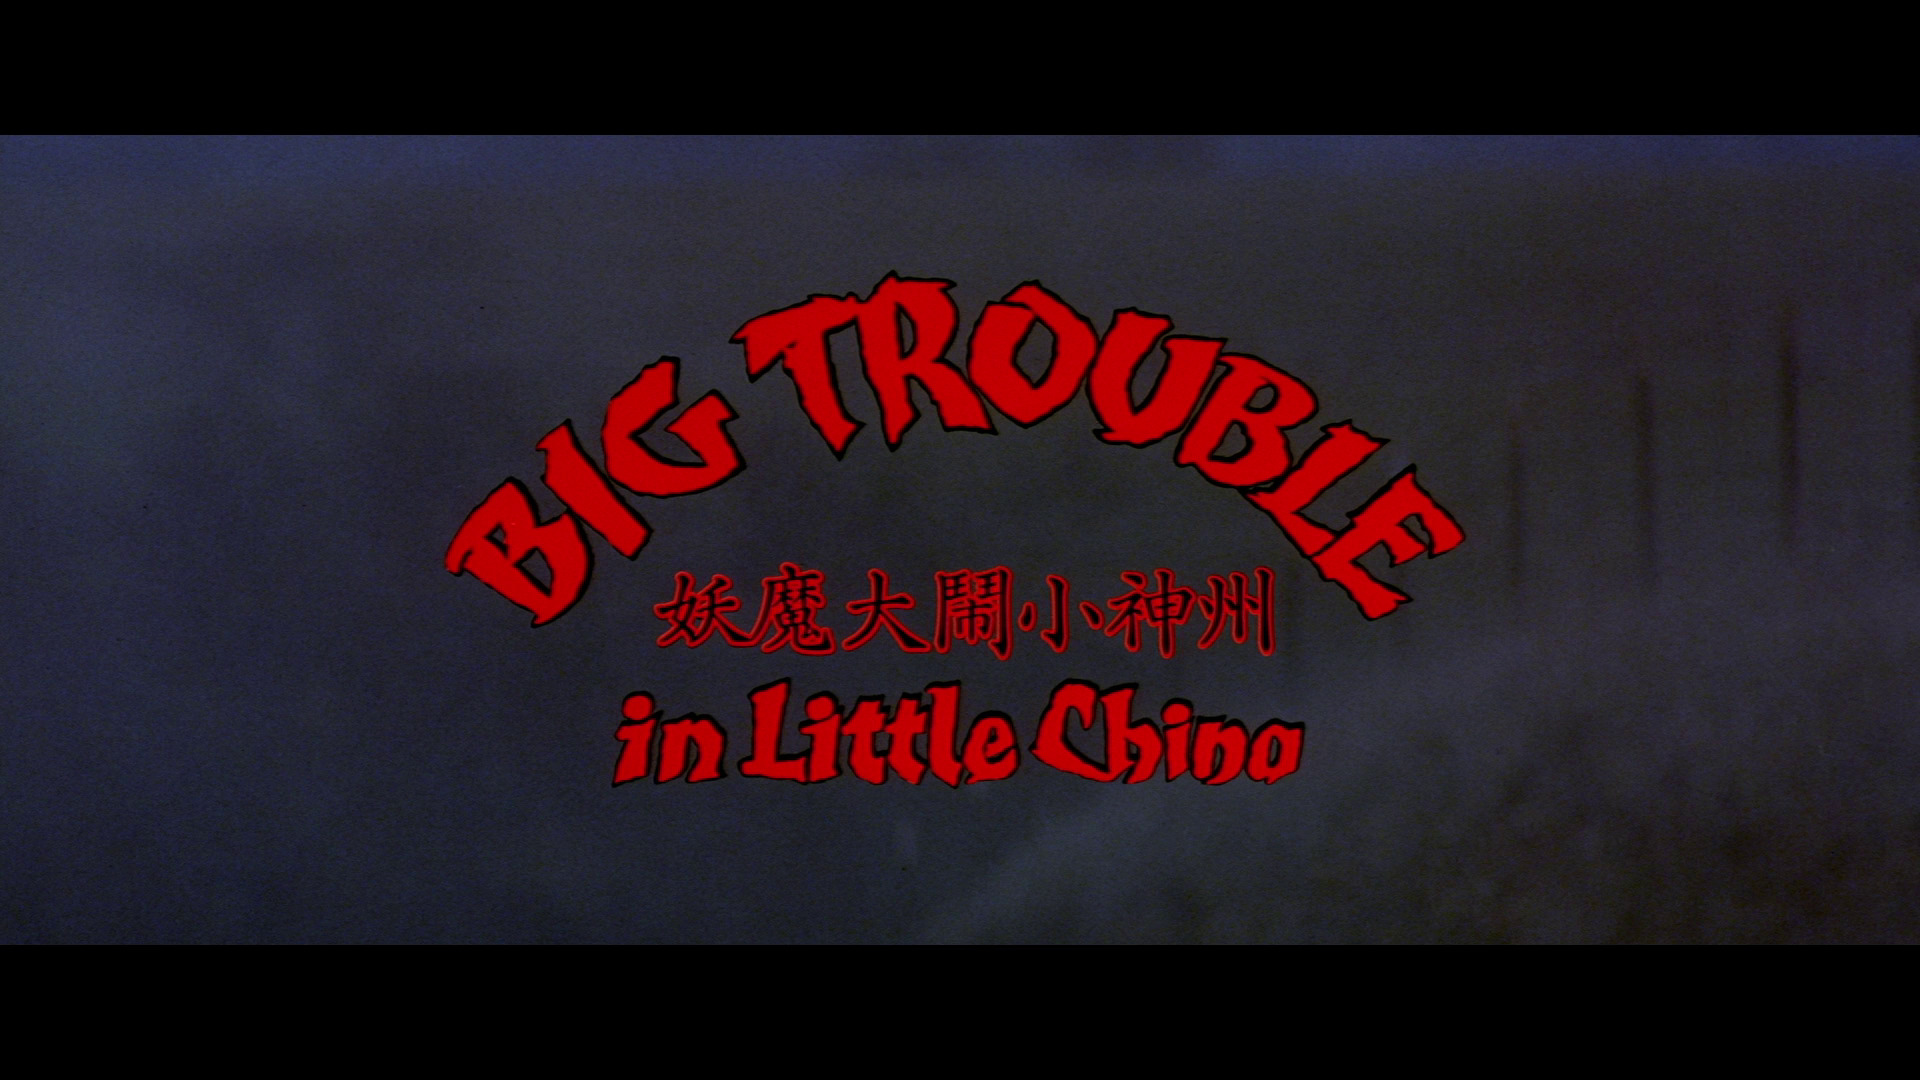 Acw1986 Big Trouble In Little China Random Thoughts